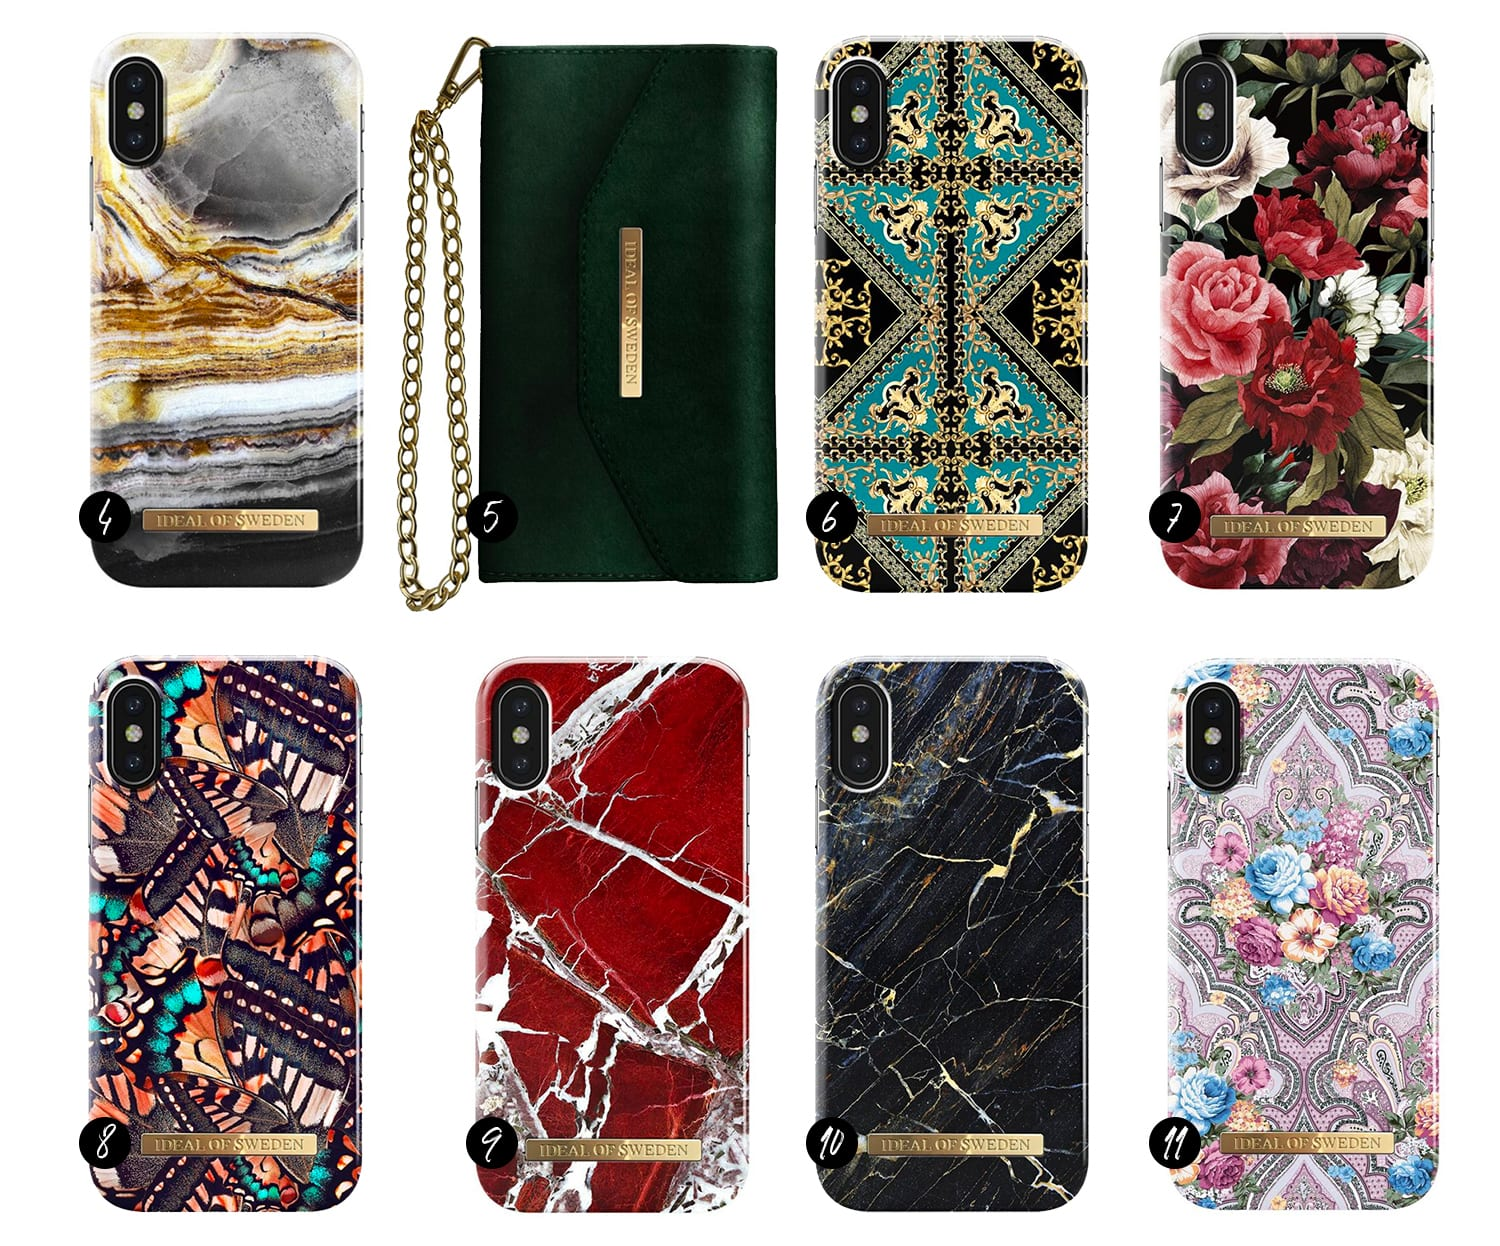 Gorgeous iPhone Cases from Ideal of Sweden